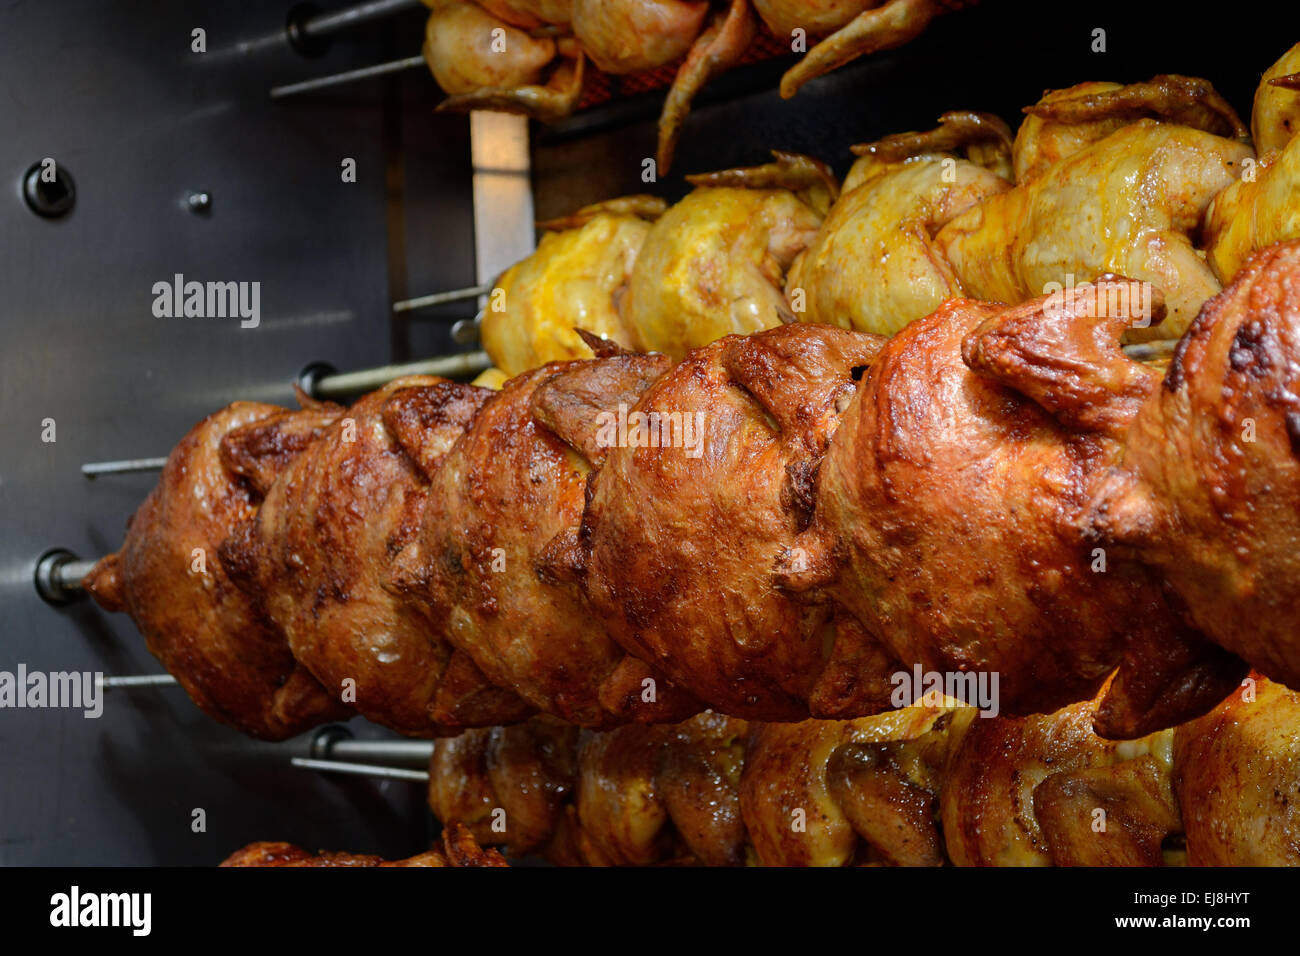 Poultry meat rotates on chicken griller - Stock Image